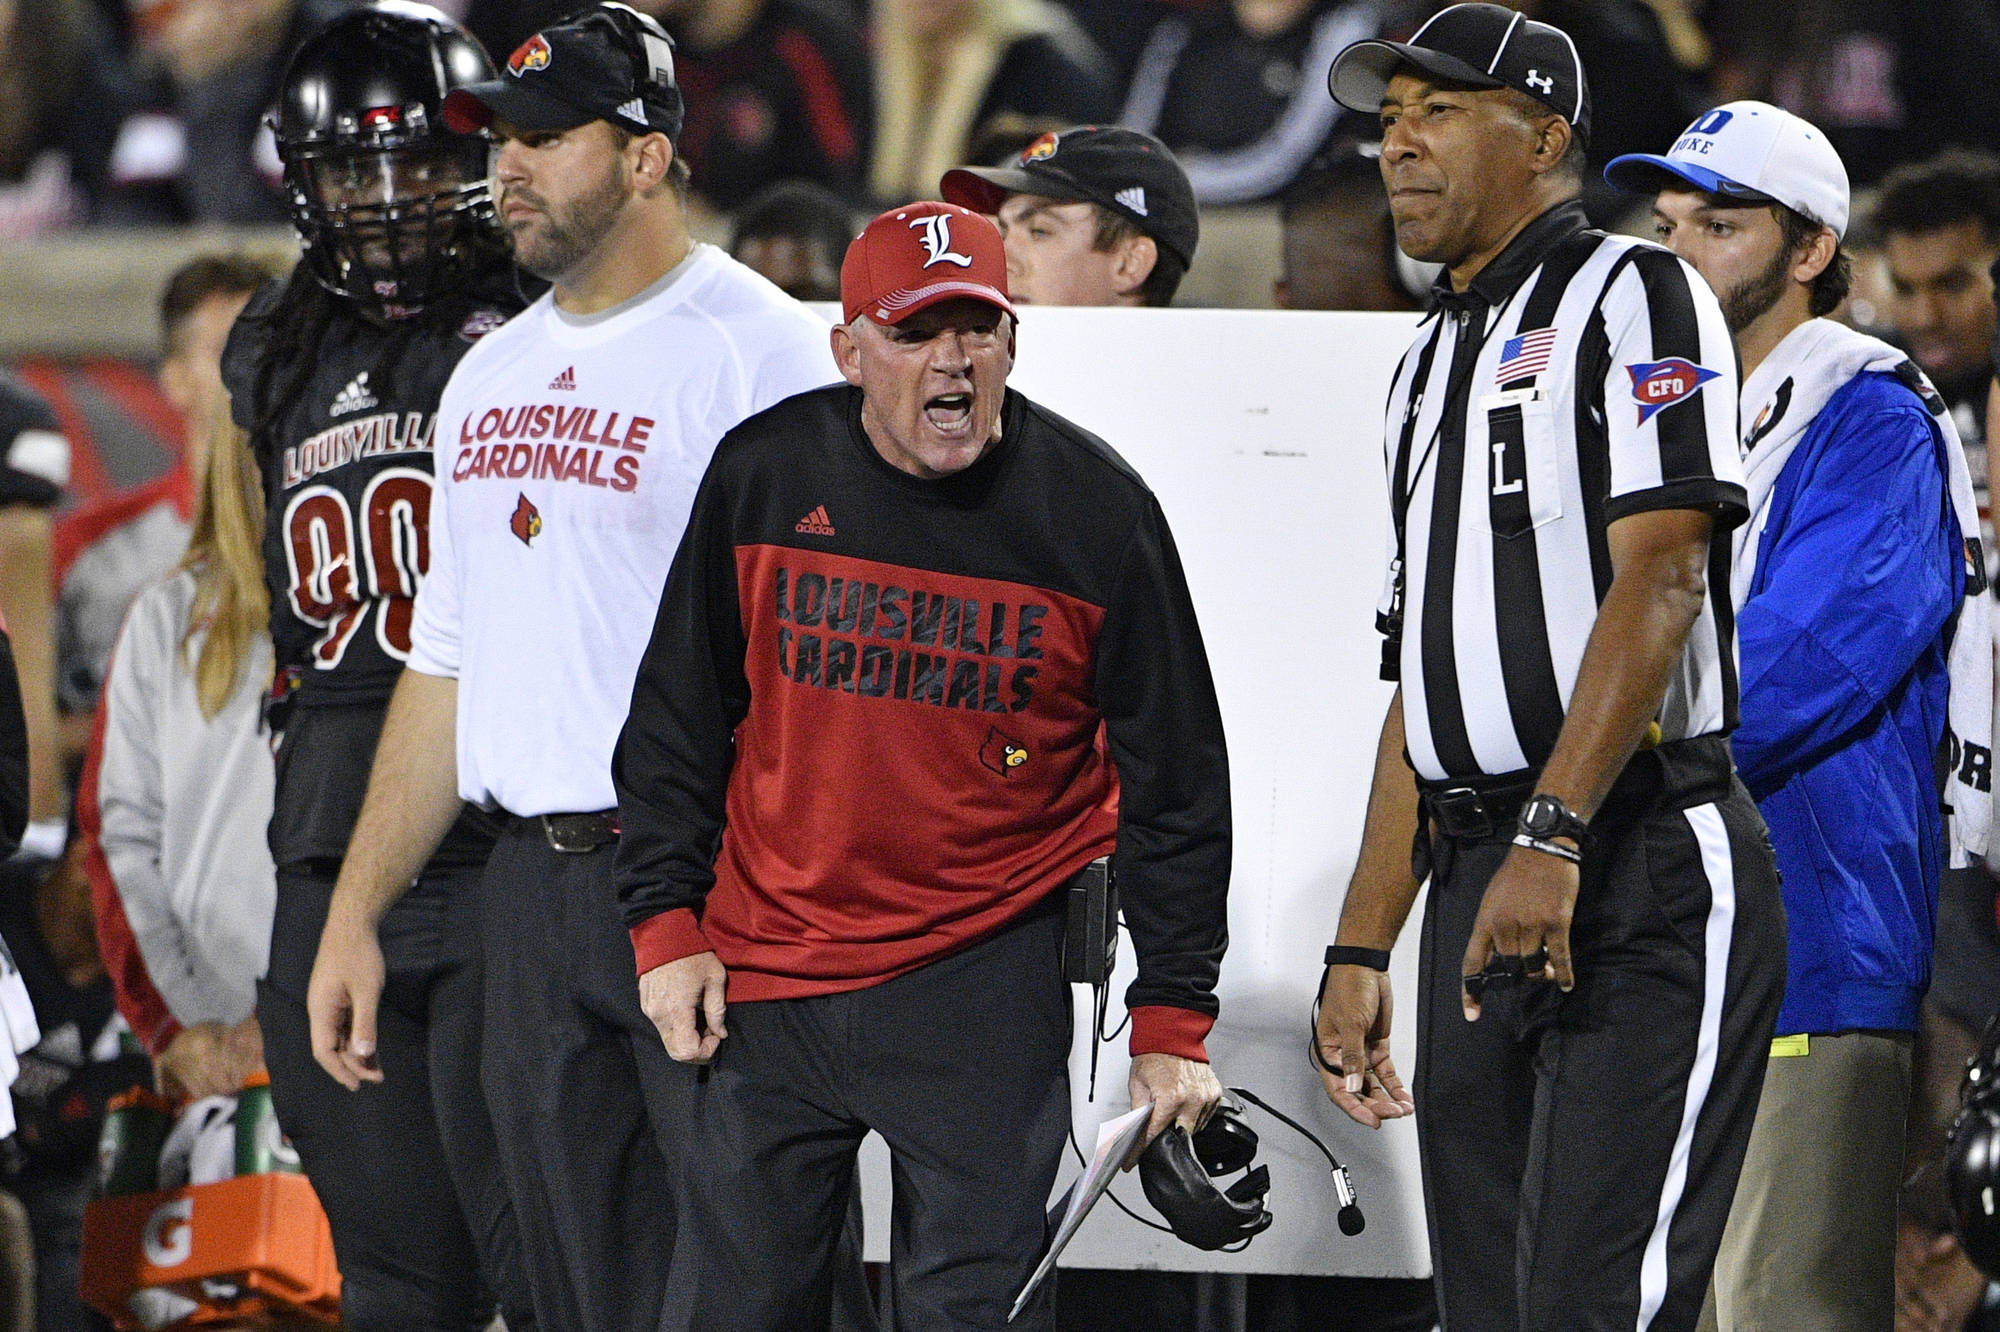 The ACC Officiating: Utterly Inept or Crooked?